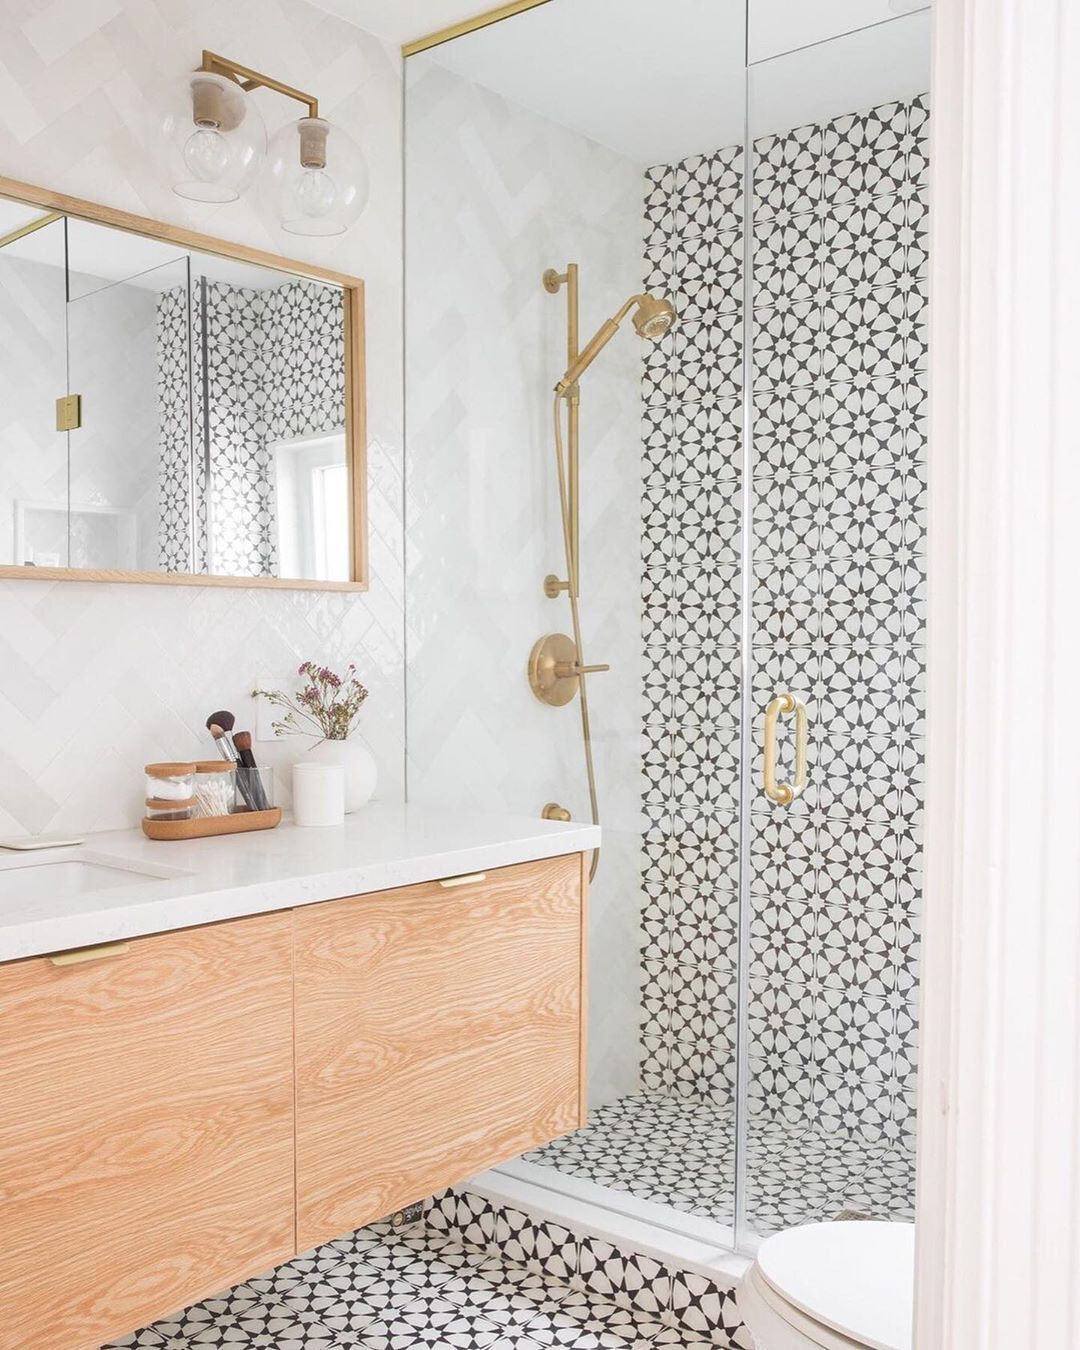 "Cement Tile Shop on Instagram: ""We love the way this bathroom tile flows through the room and up the shower wall! The in stock Atlas II pattern adds a perfect amount of…"""